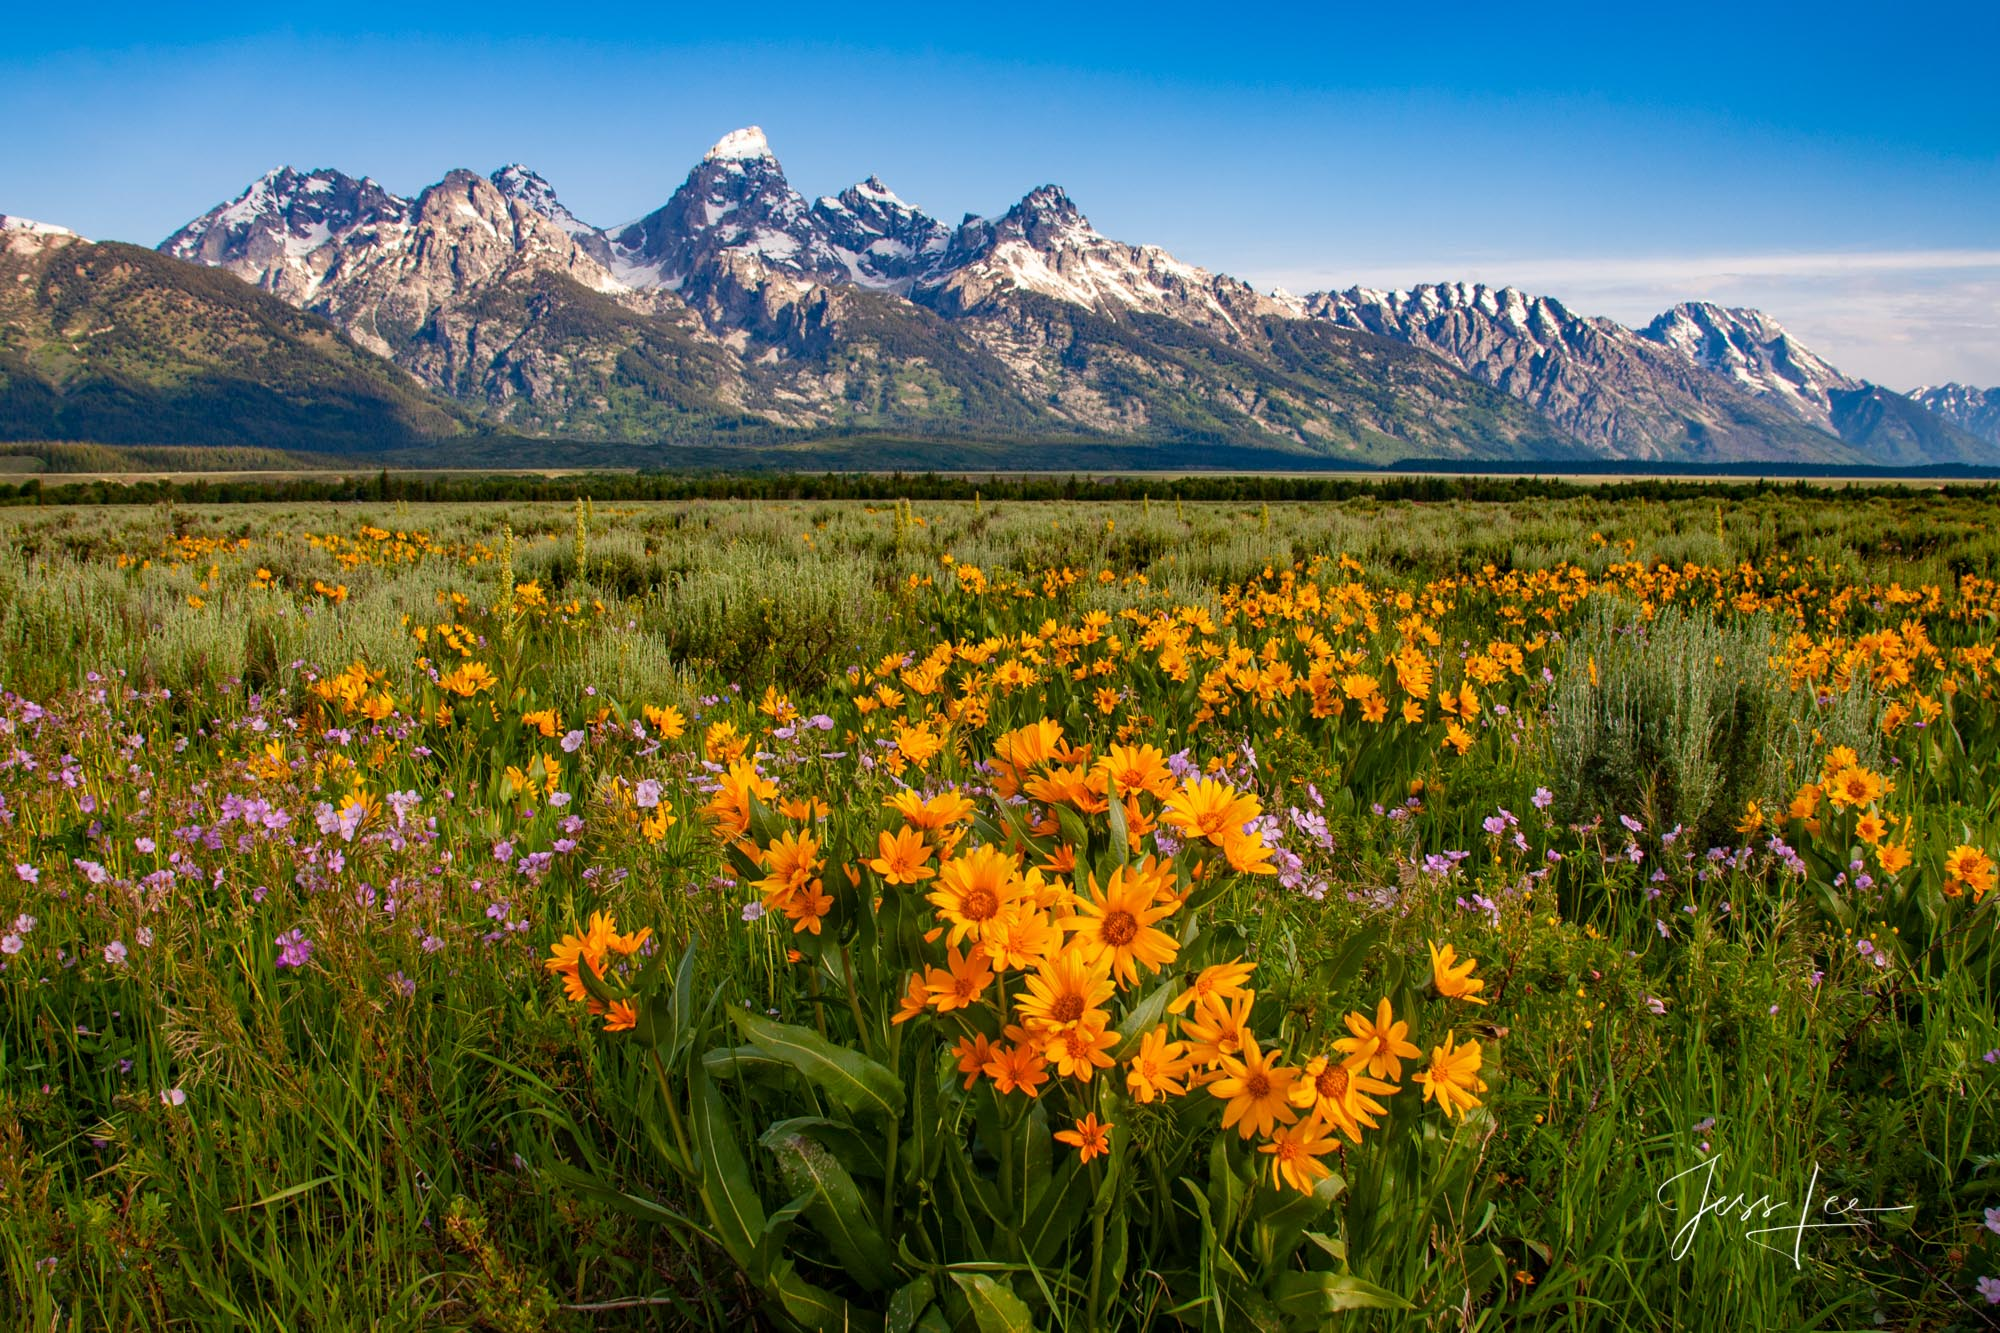 photo of Grand Tetons in Wyoming, spring, flowers, landscape photography, plants, greenery, bright colors, mountain photo, Jackson Hole, National Park, blue sky, fine art print, high quality, high res, photo